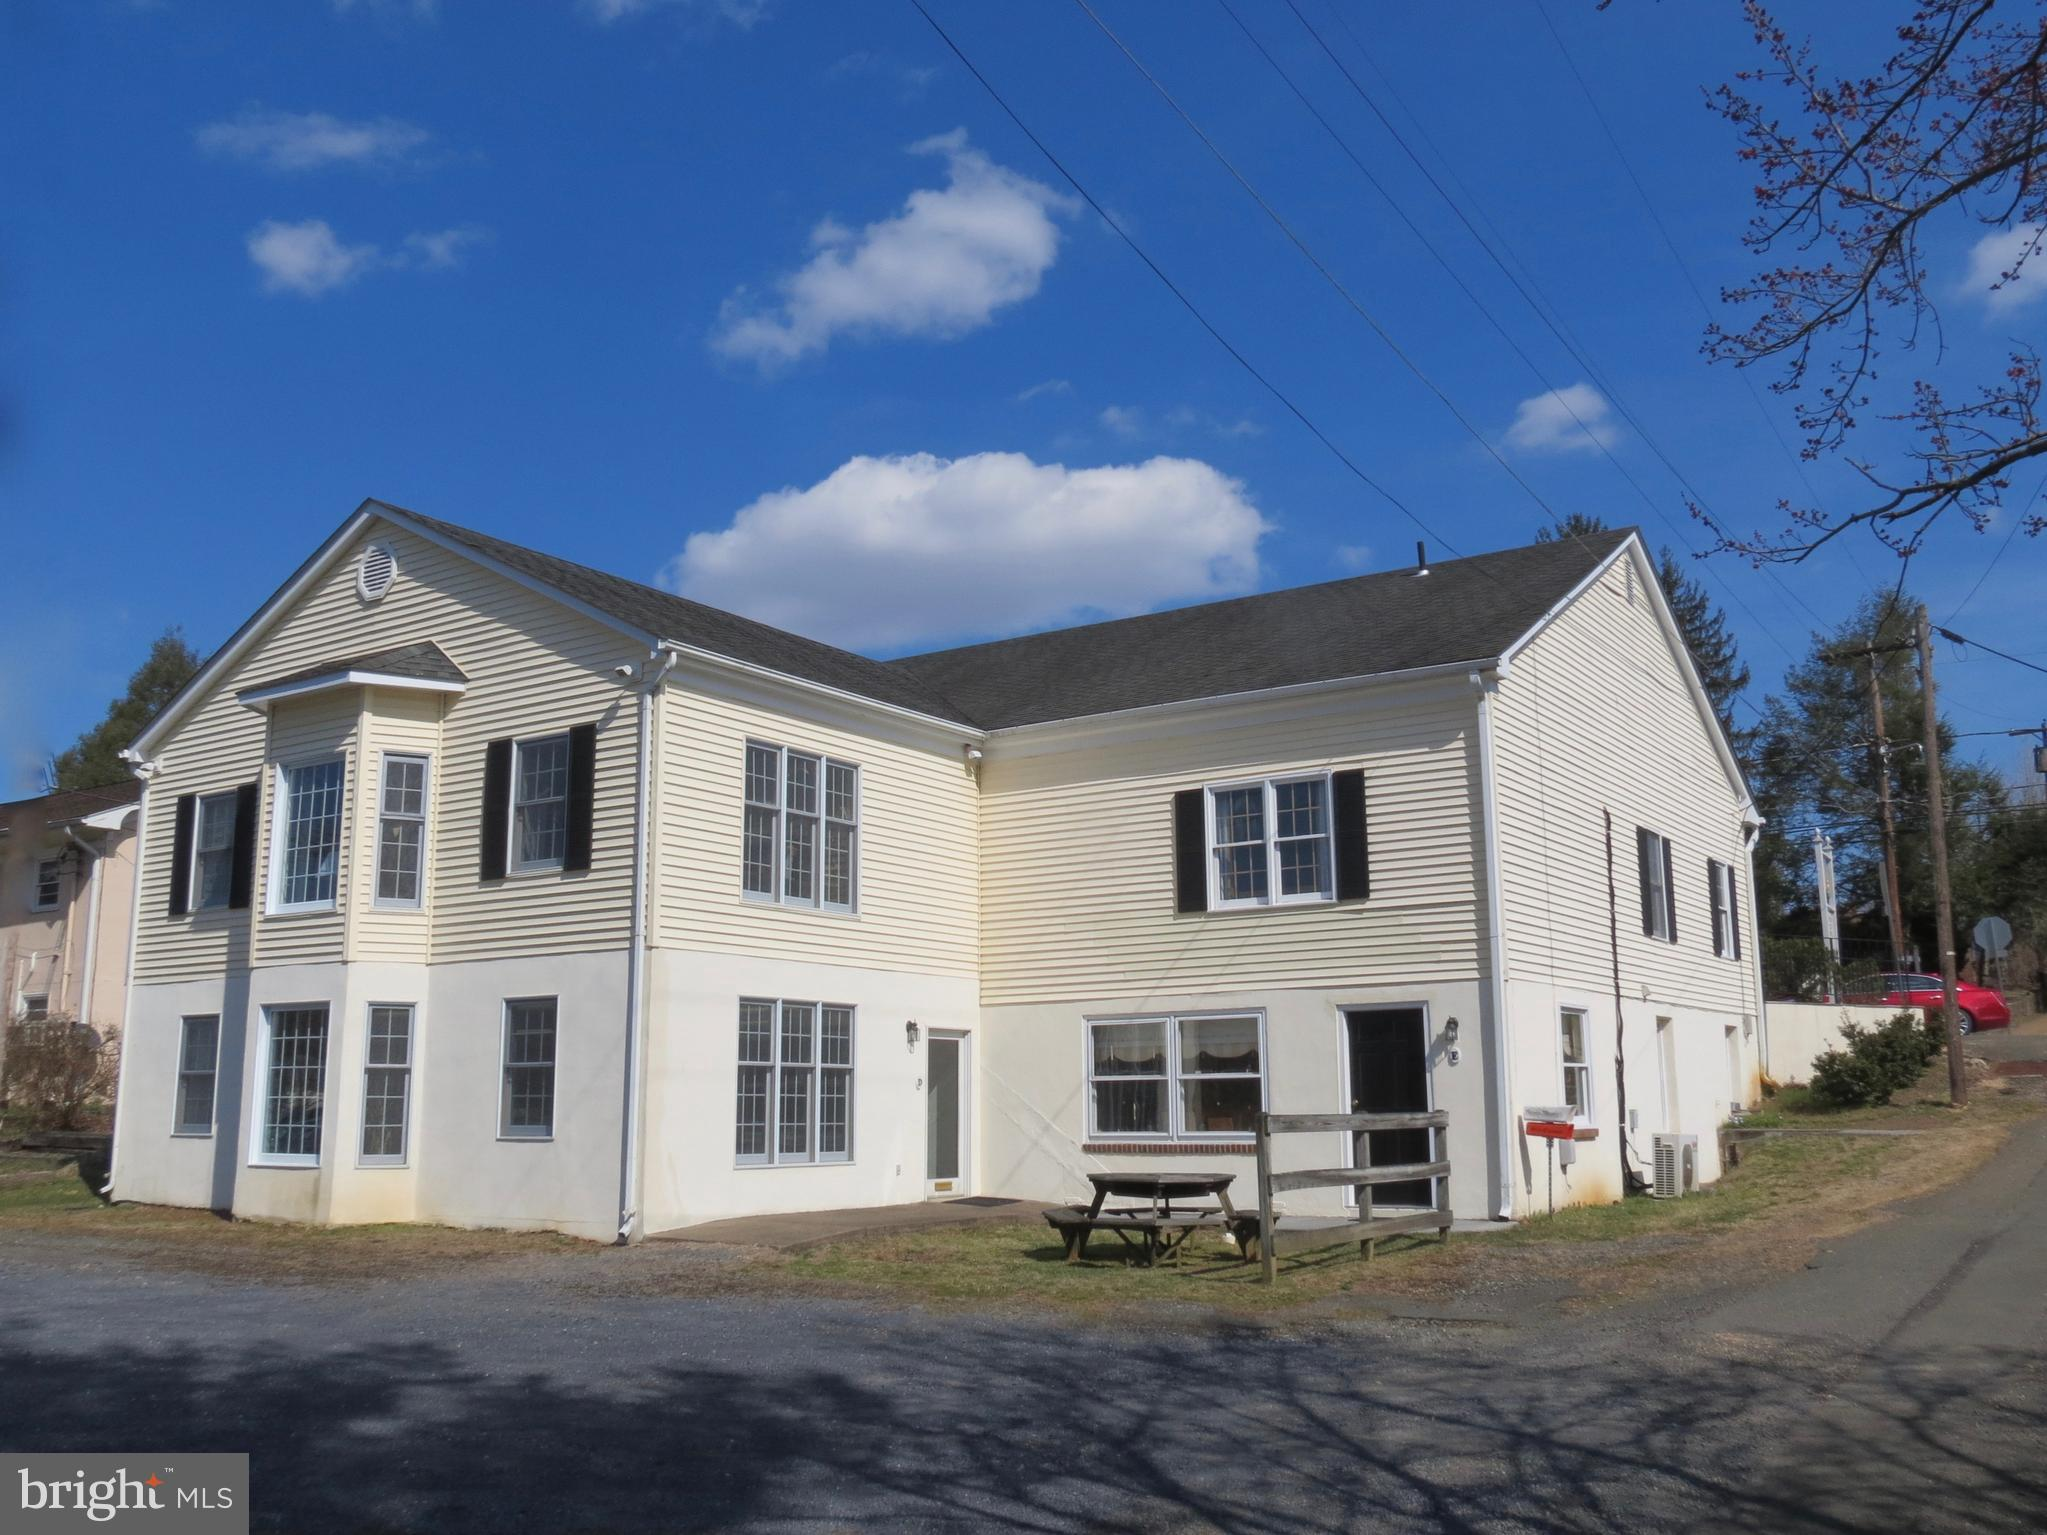 211 MAIN STREET, WASHINGTON, VA 22747